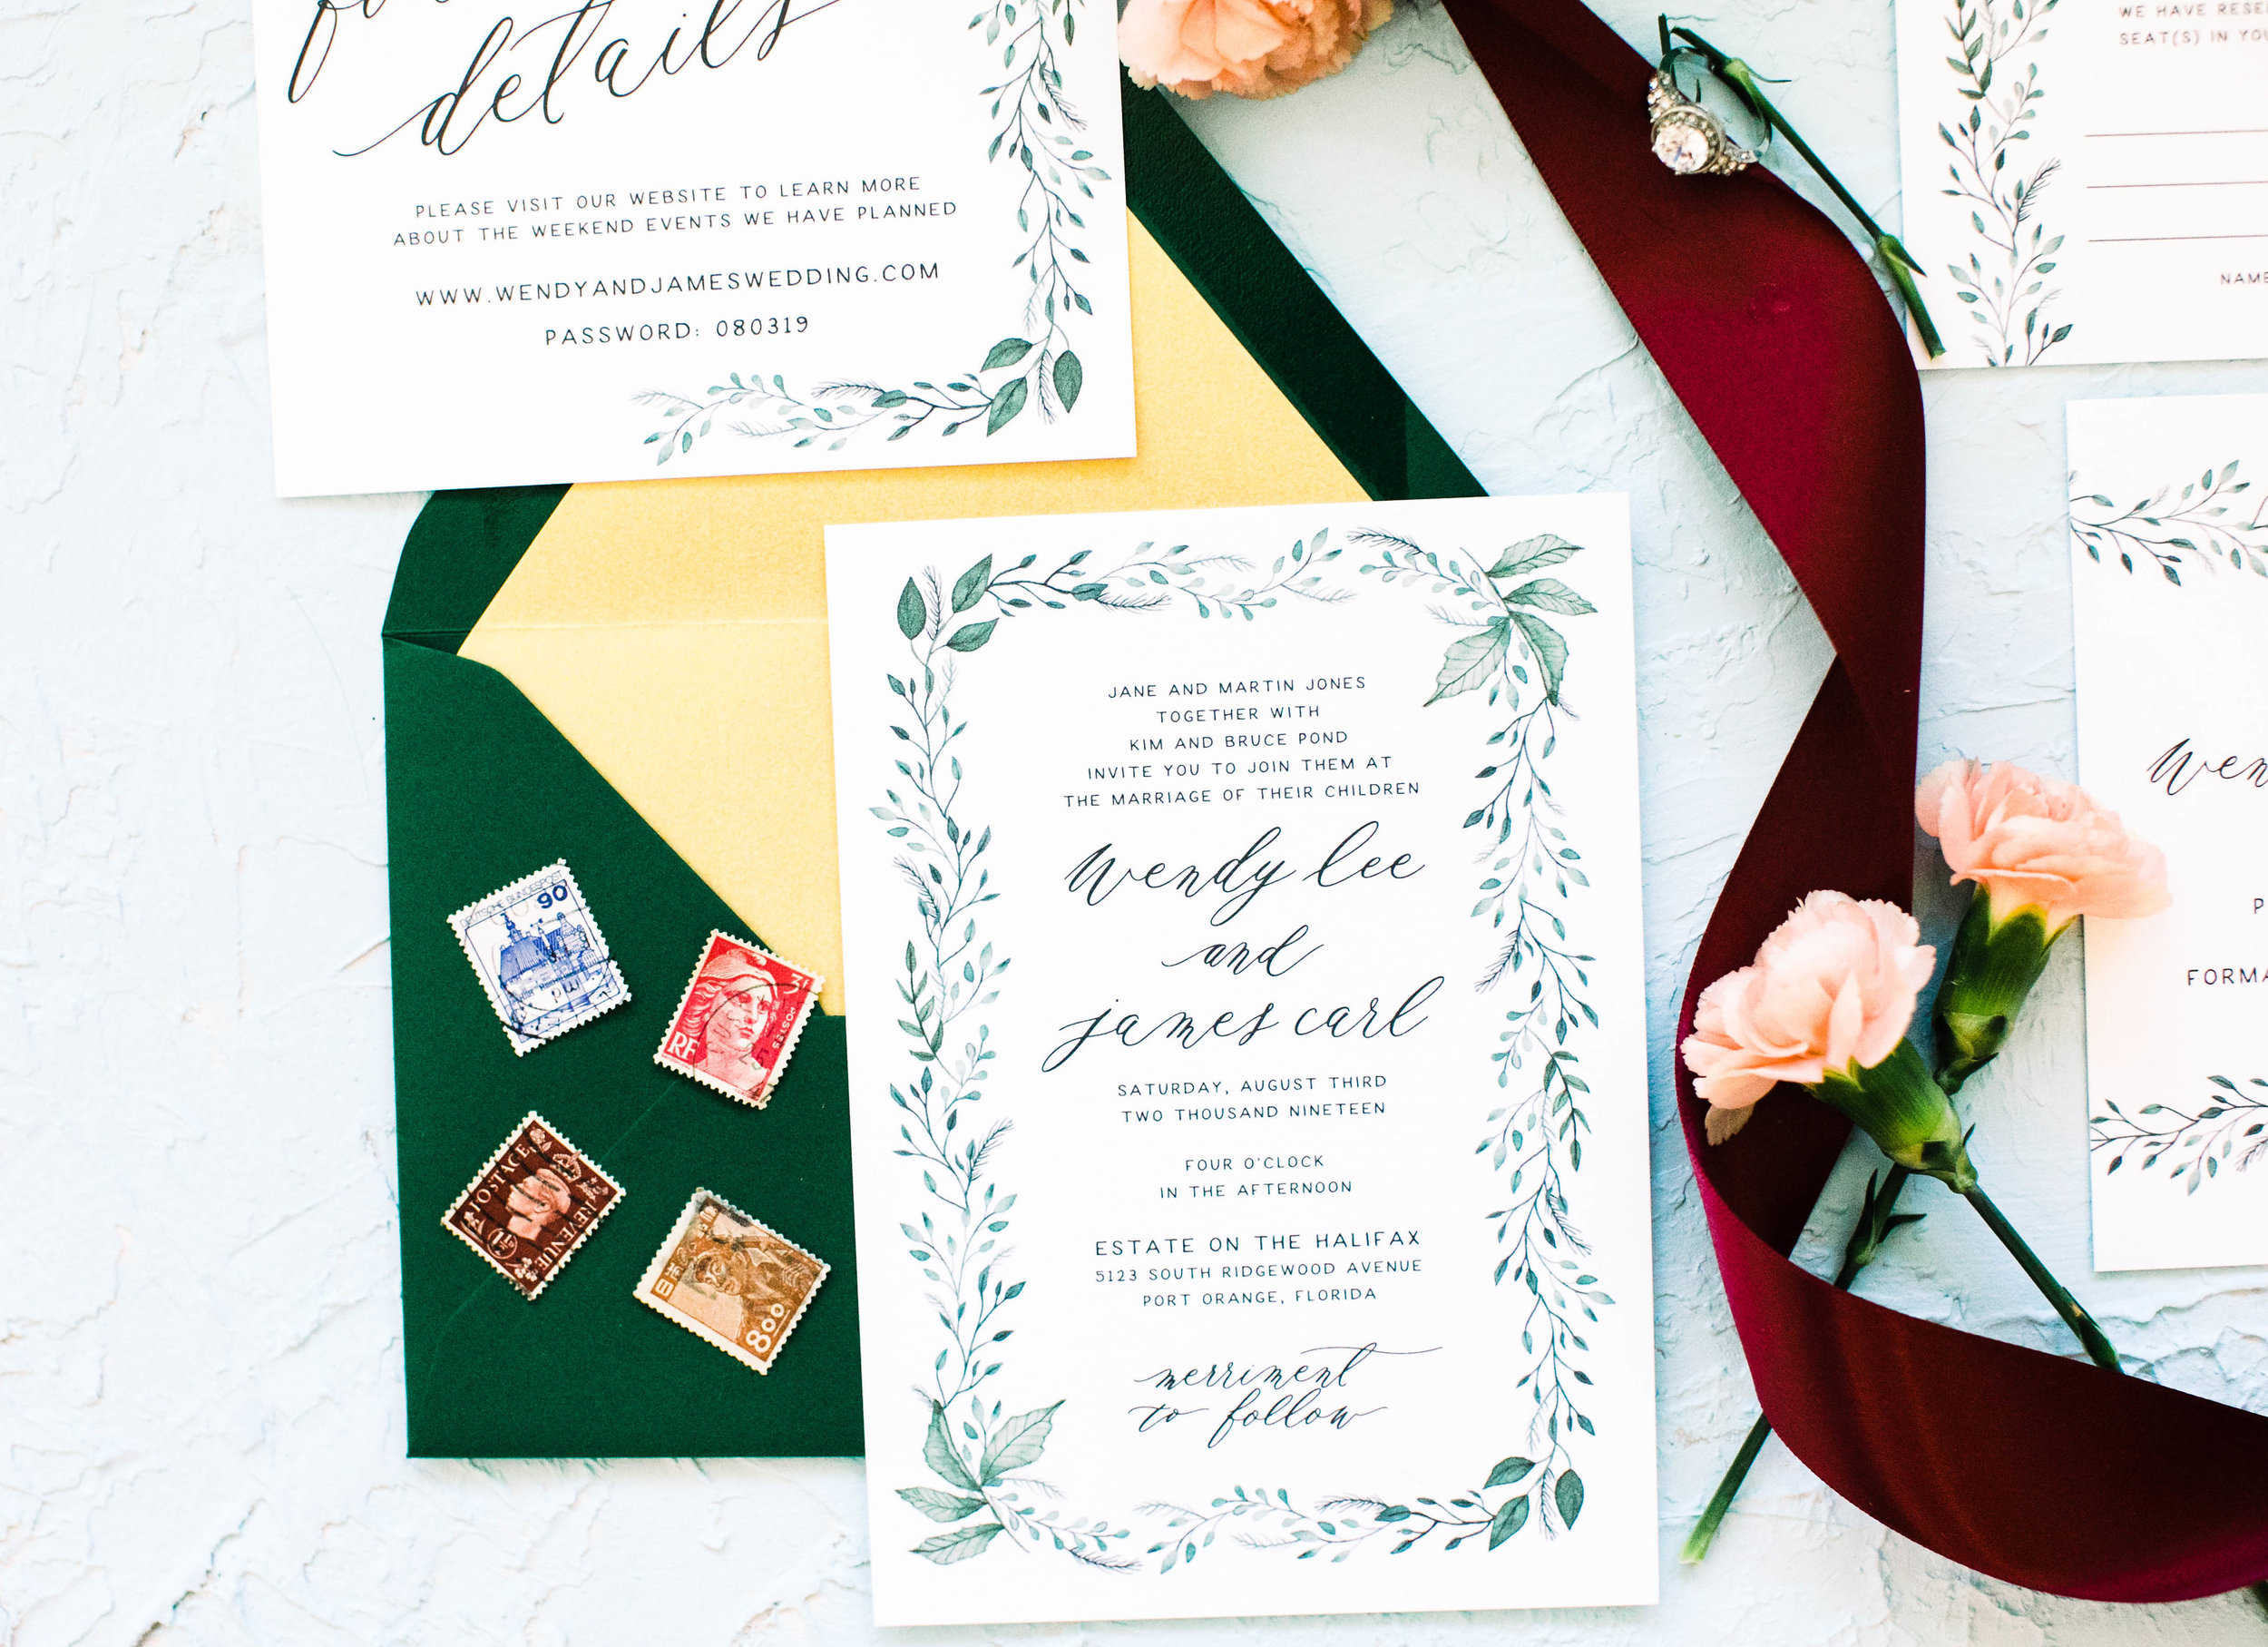 Hand Painted Watercolor Greenery Wedding Invitations -Wendy 3W2A0334.jpg